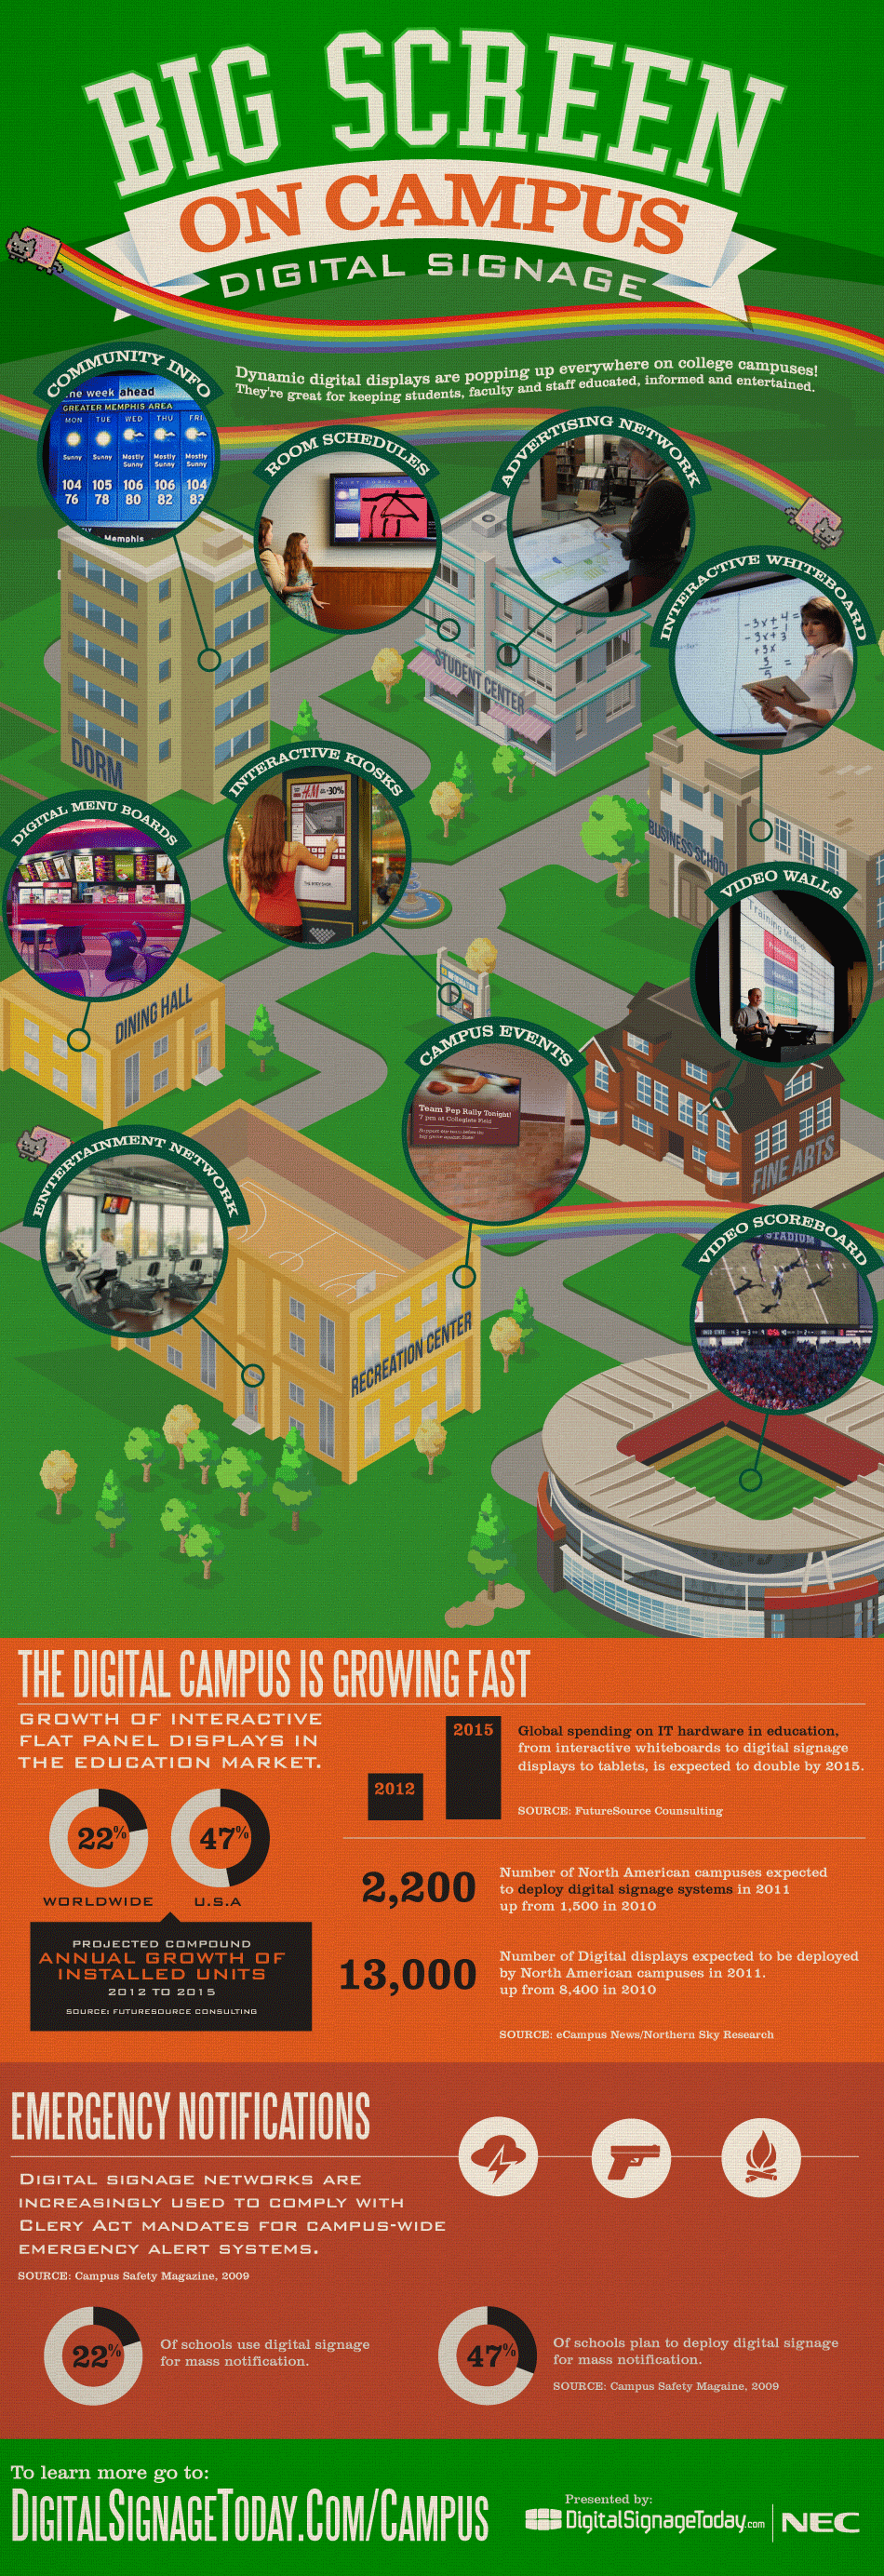 Digital Signage: Big Screen on Campus